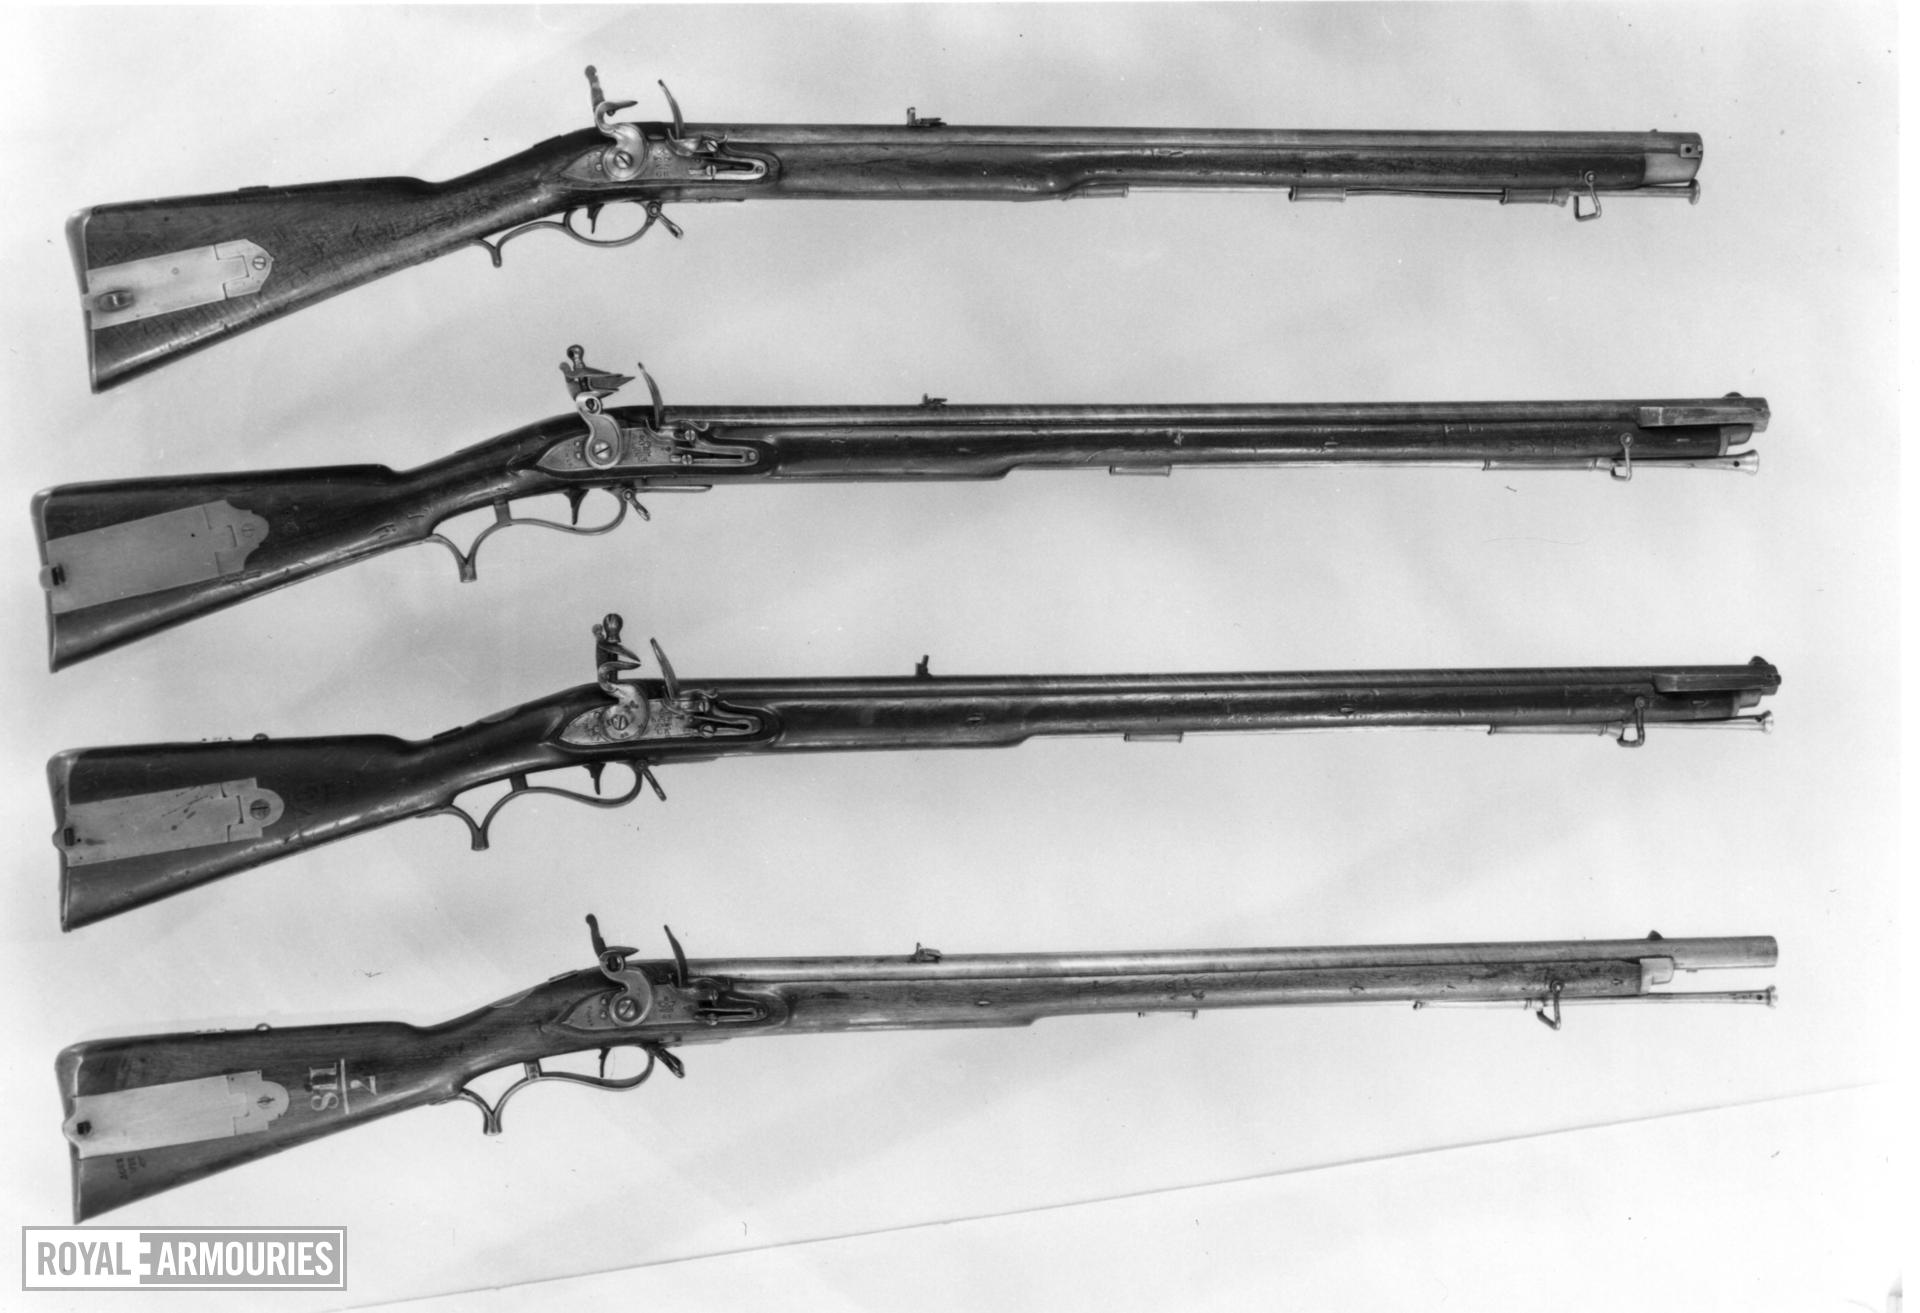 Flintlock muzzle-loading rifle - Baker Rifle